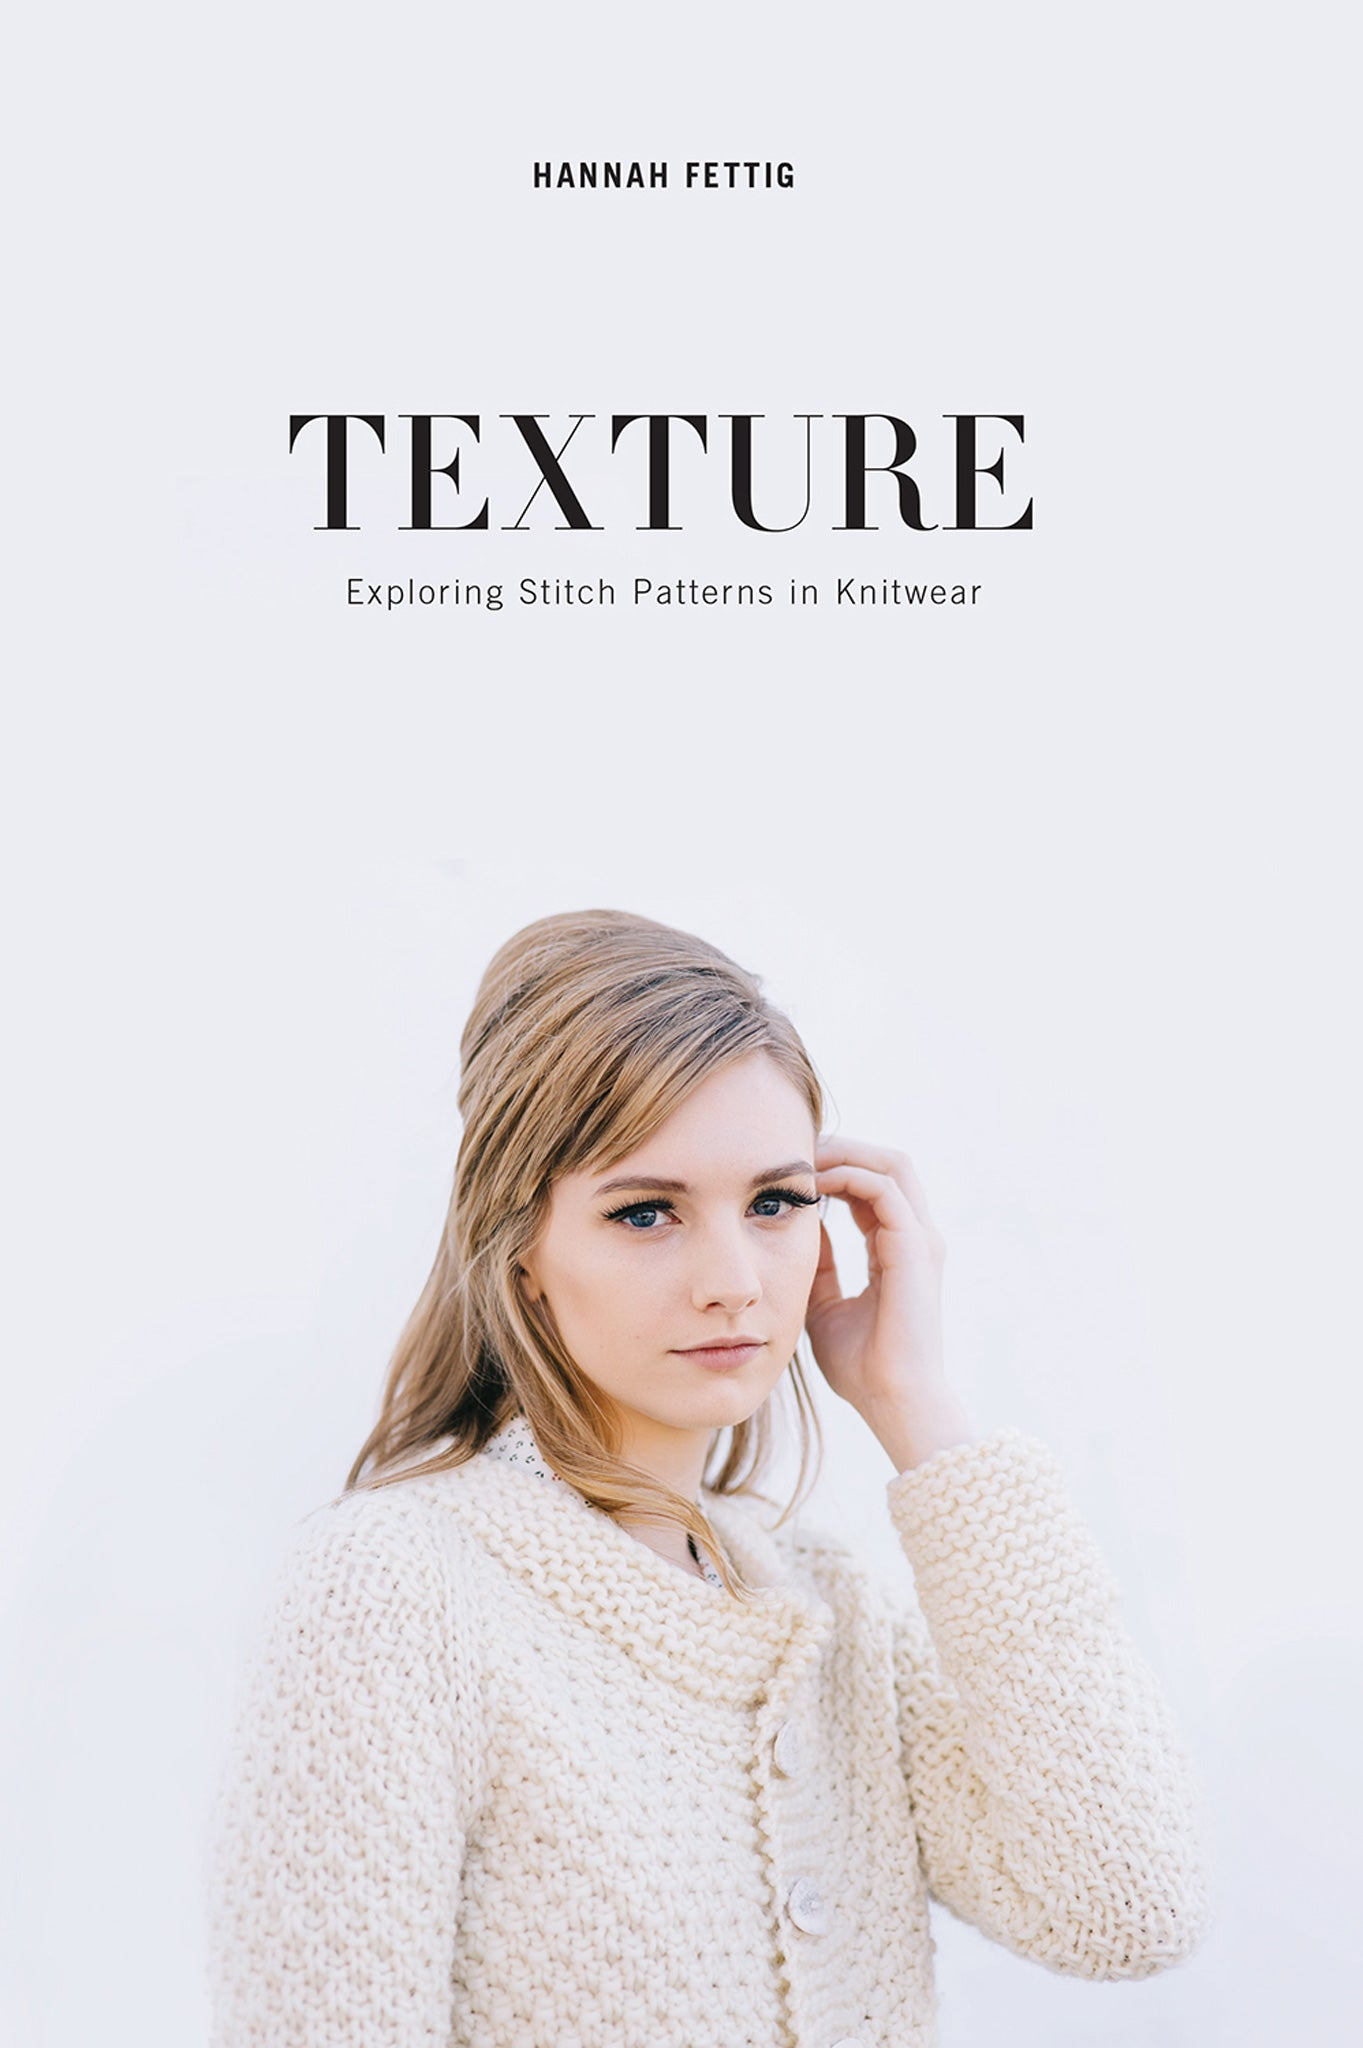 http://quinceandco.com/products/texture-exploring-stitch-patterns-in-knitwear